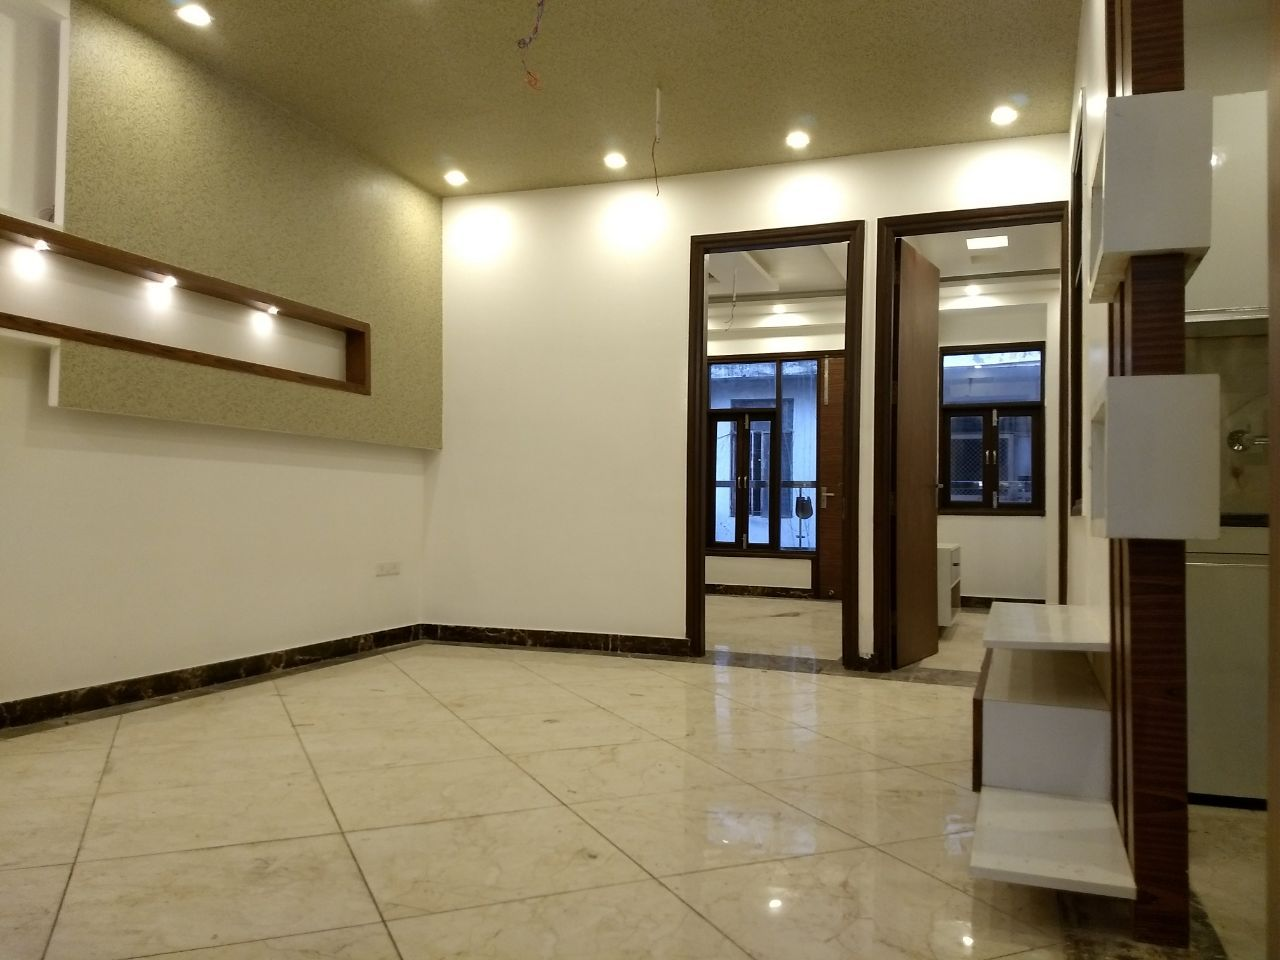 Real Estate Property Shoppe Providing 2 Bhk 3 Bhk 4 Bhk Flat In Mahavir Enclave Dwarka In Low Affordable Residential House Real Estate Real Estate Development